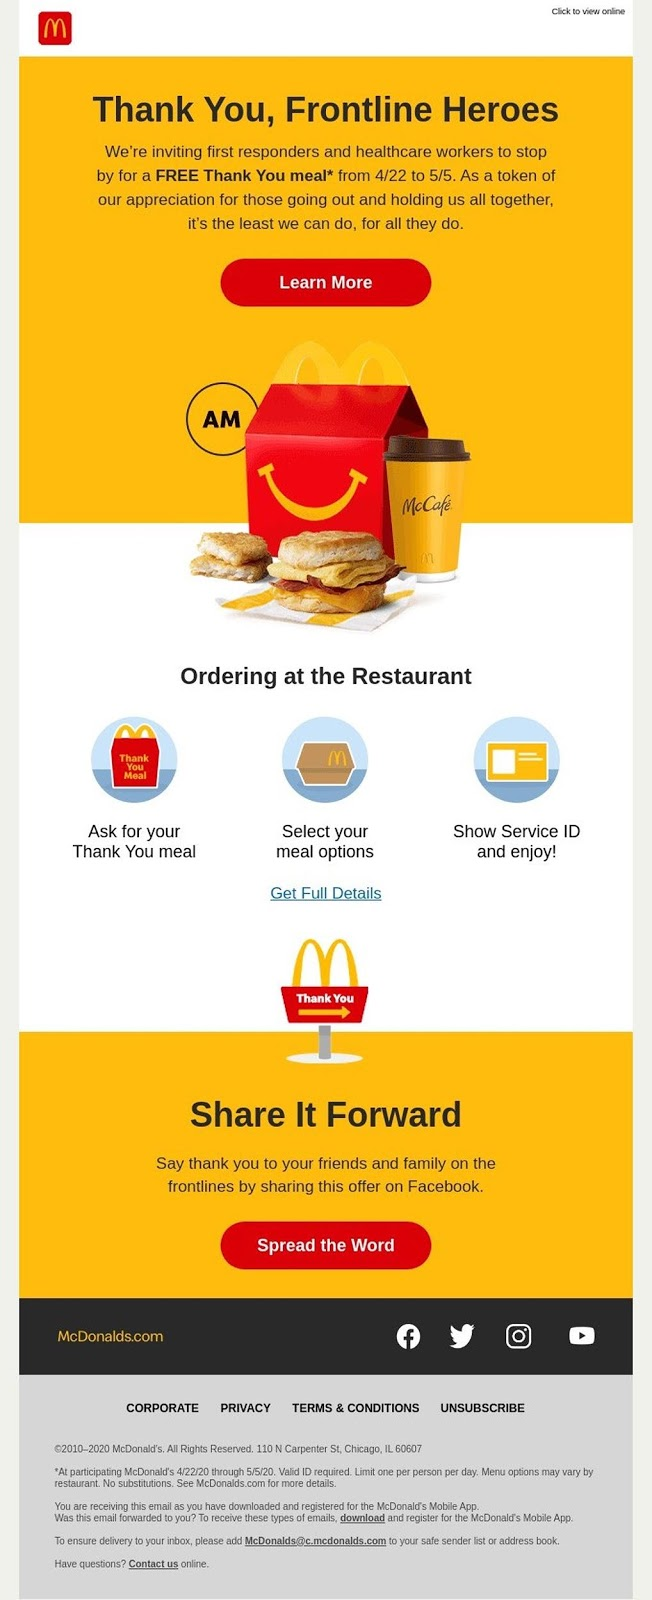 McDonalds' email campaign thanks frontline workers and stays true to its brand with consistent golden arches messaging.